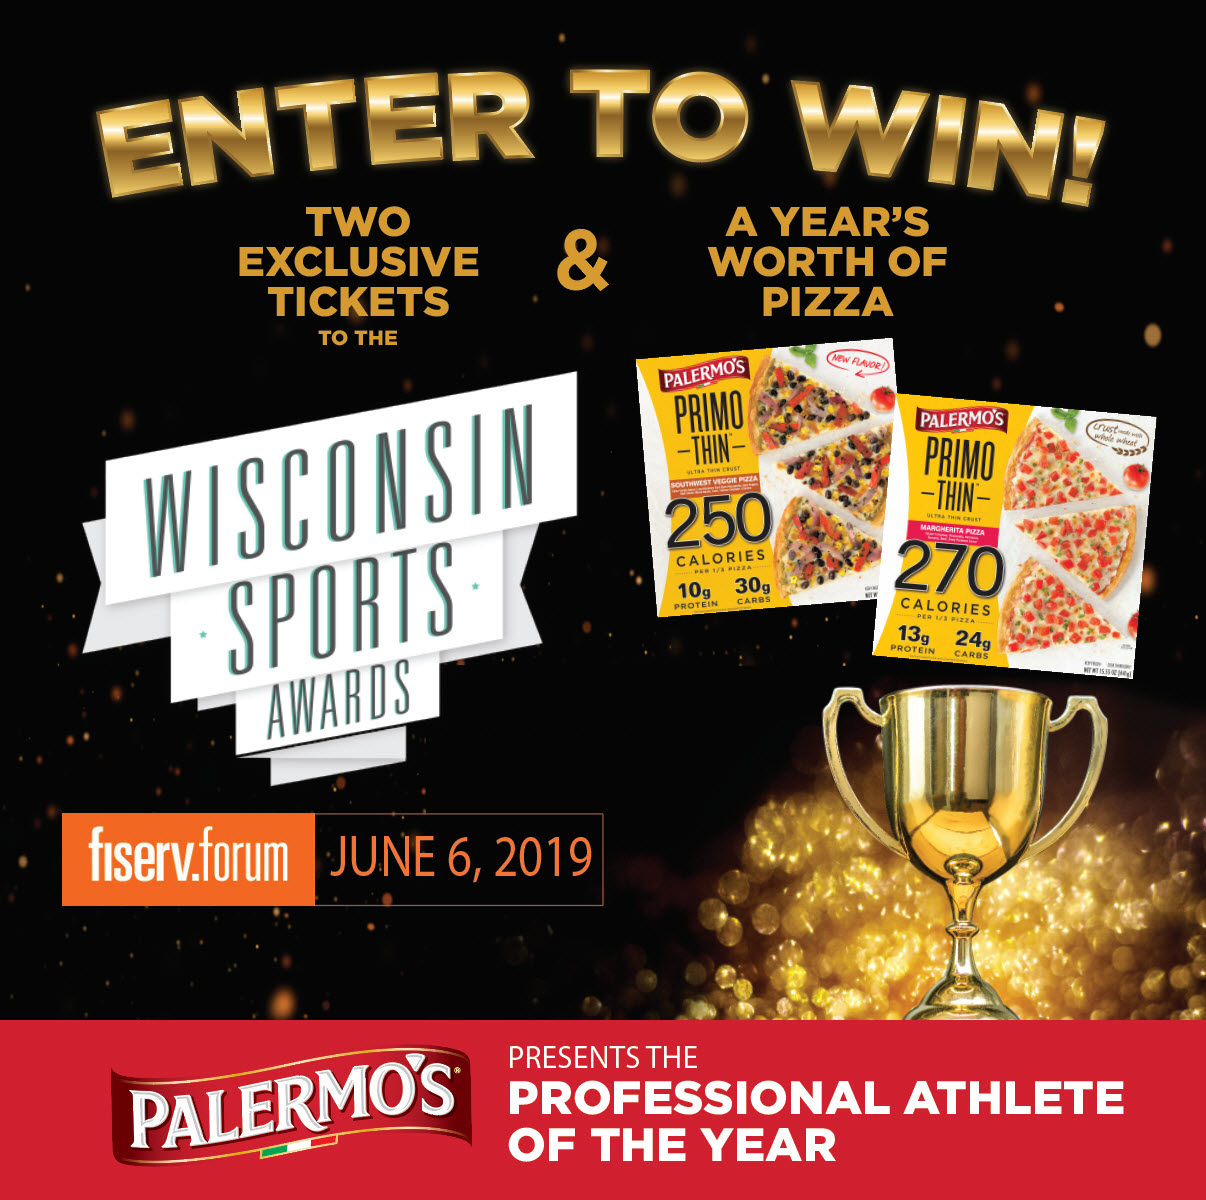 Join Palermo's at the Wisconsin Sports Awards